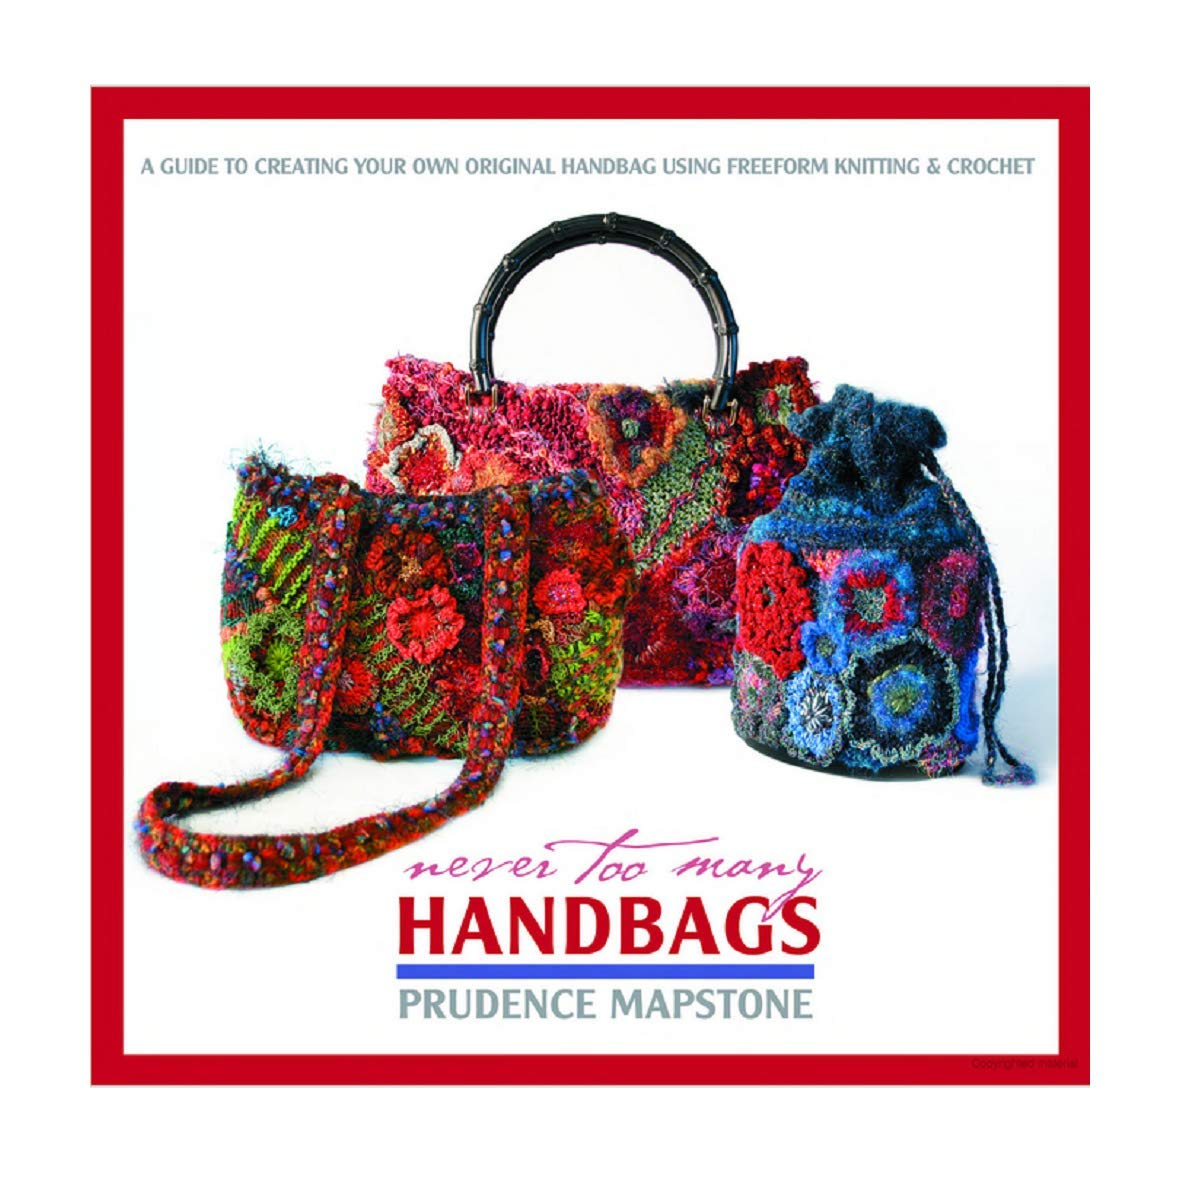 Never Too Many Handbags : Tips and Techniques for Creating Your Own Freeform  Handbag Paperback – 2005